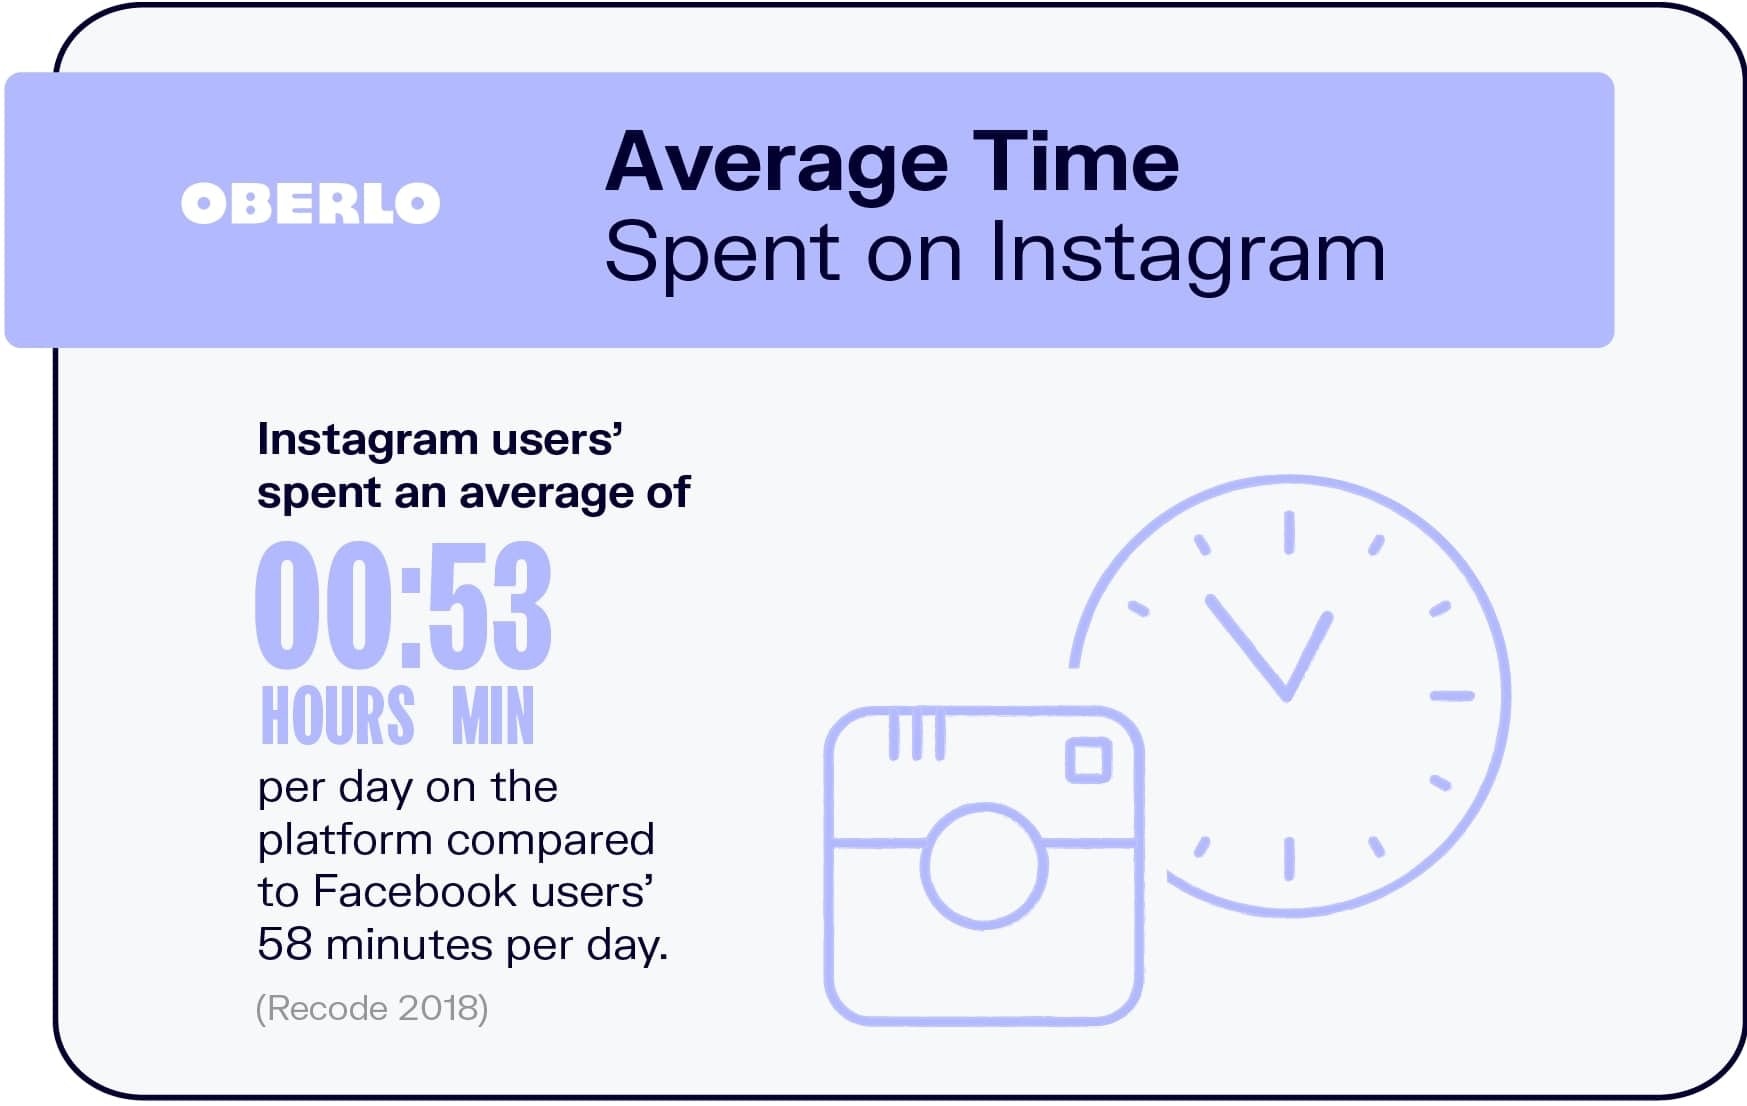 How Much Time Do People Spend on Instagram Daily on Average?